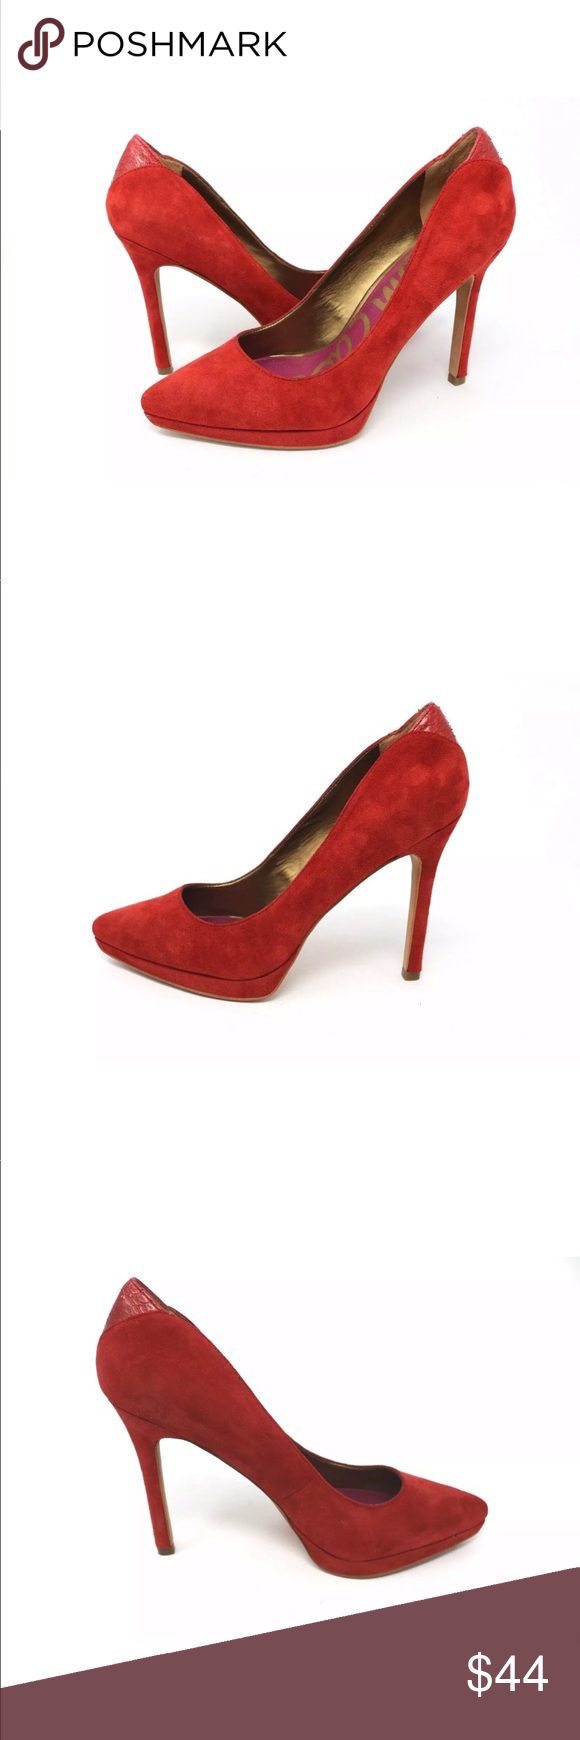 5cfc2910673a5d Sam Edelman Celia Red Suede Leather Platform Pump Sam Edelman Celia Red  Suede Leather Platform Pump Like New Condition. Please see pictures.